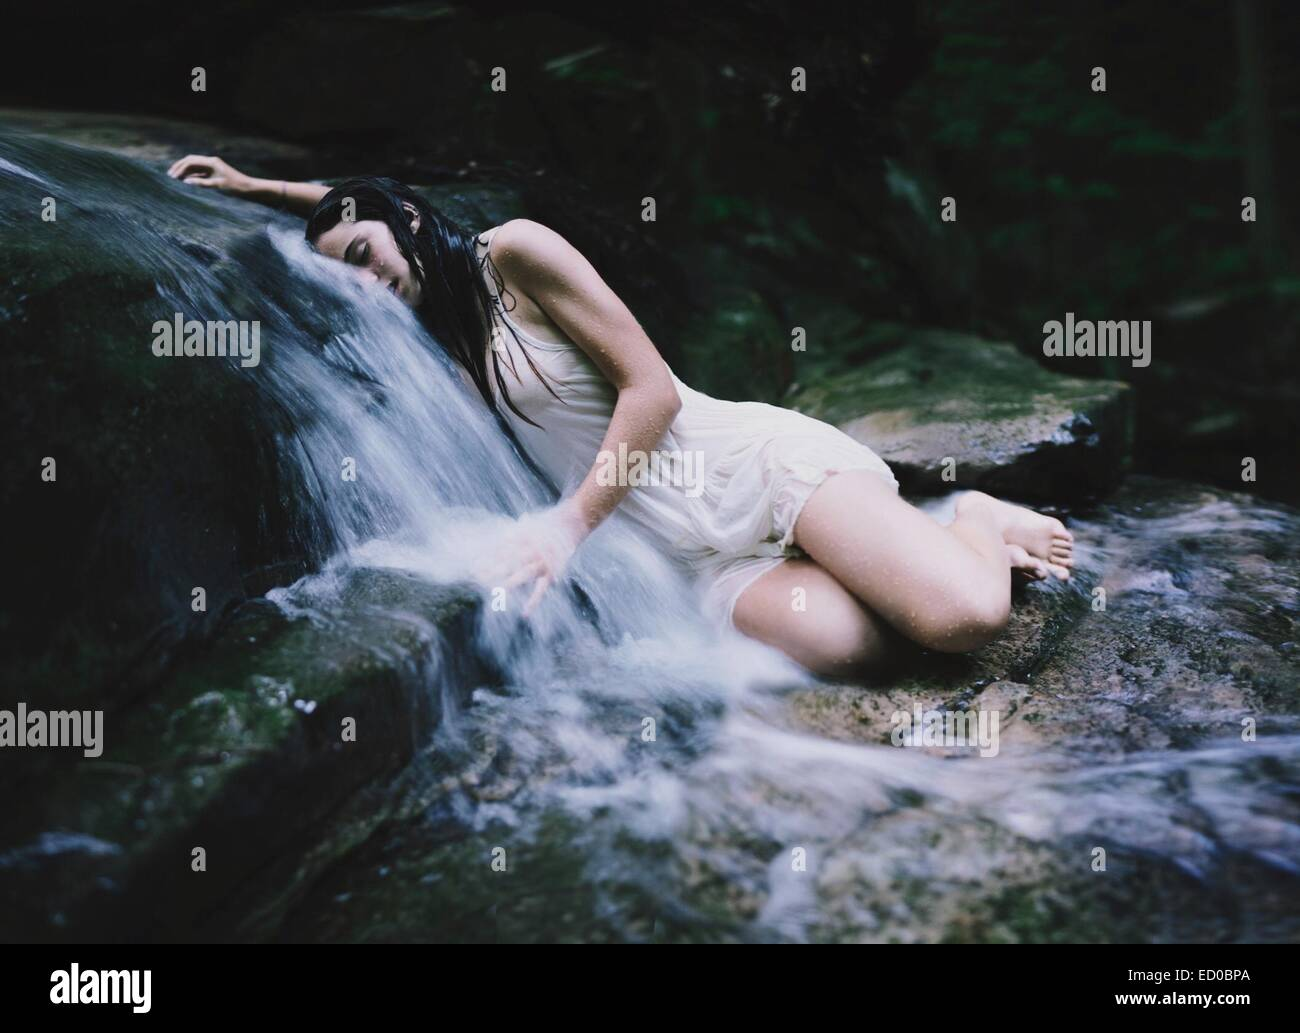 Young woman lying on small waterfall - Stock Image